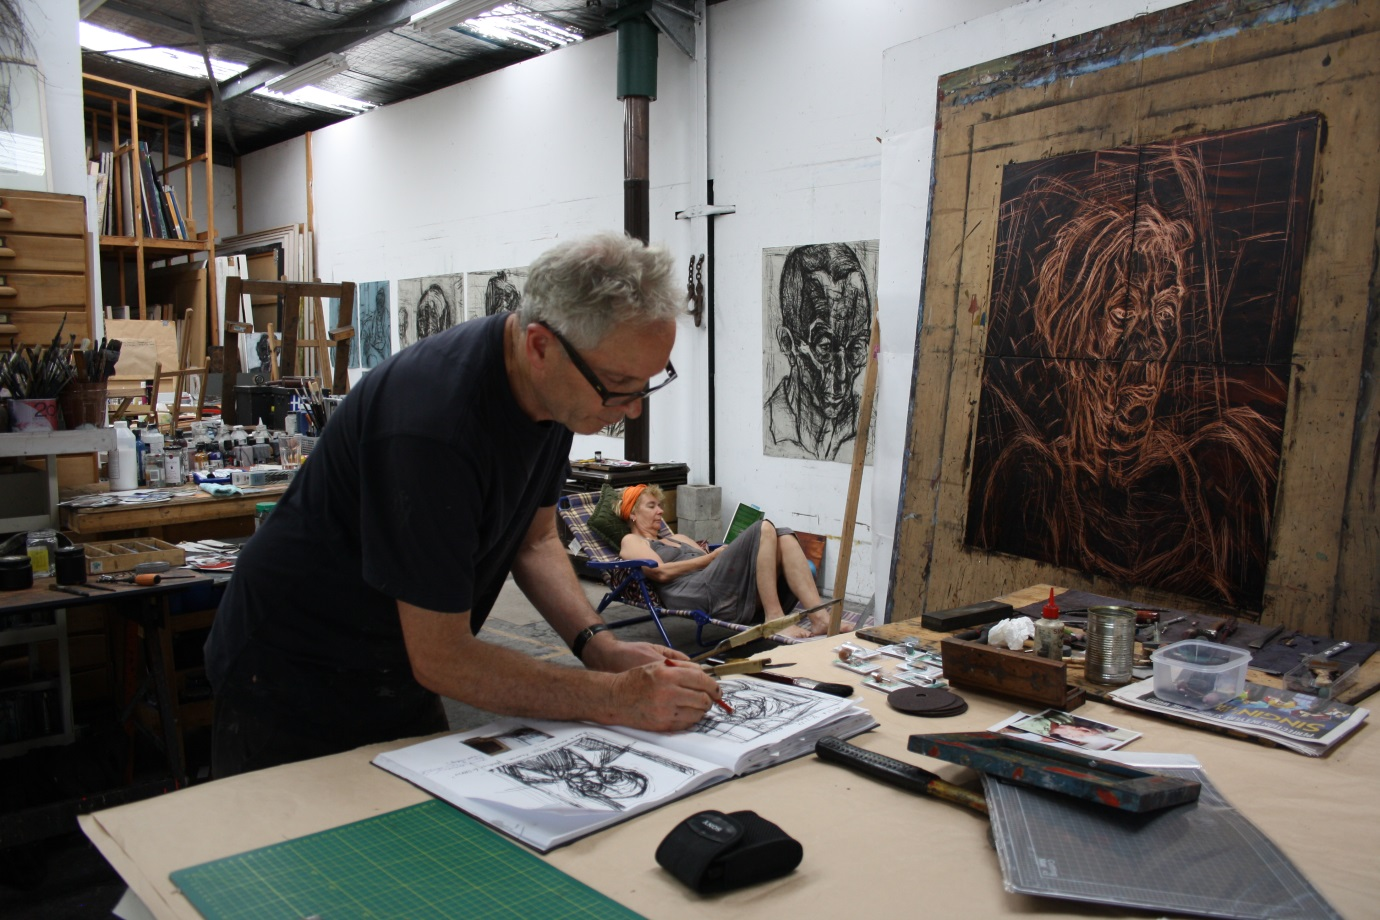 Fairbairn at work in his studio, courtesy of the artist